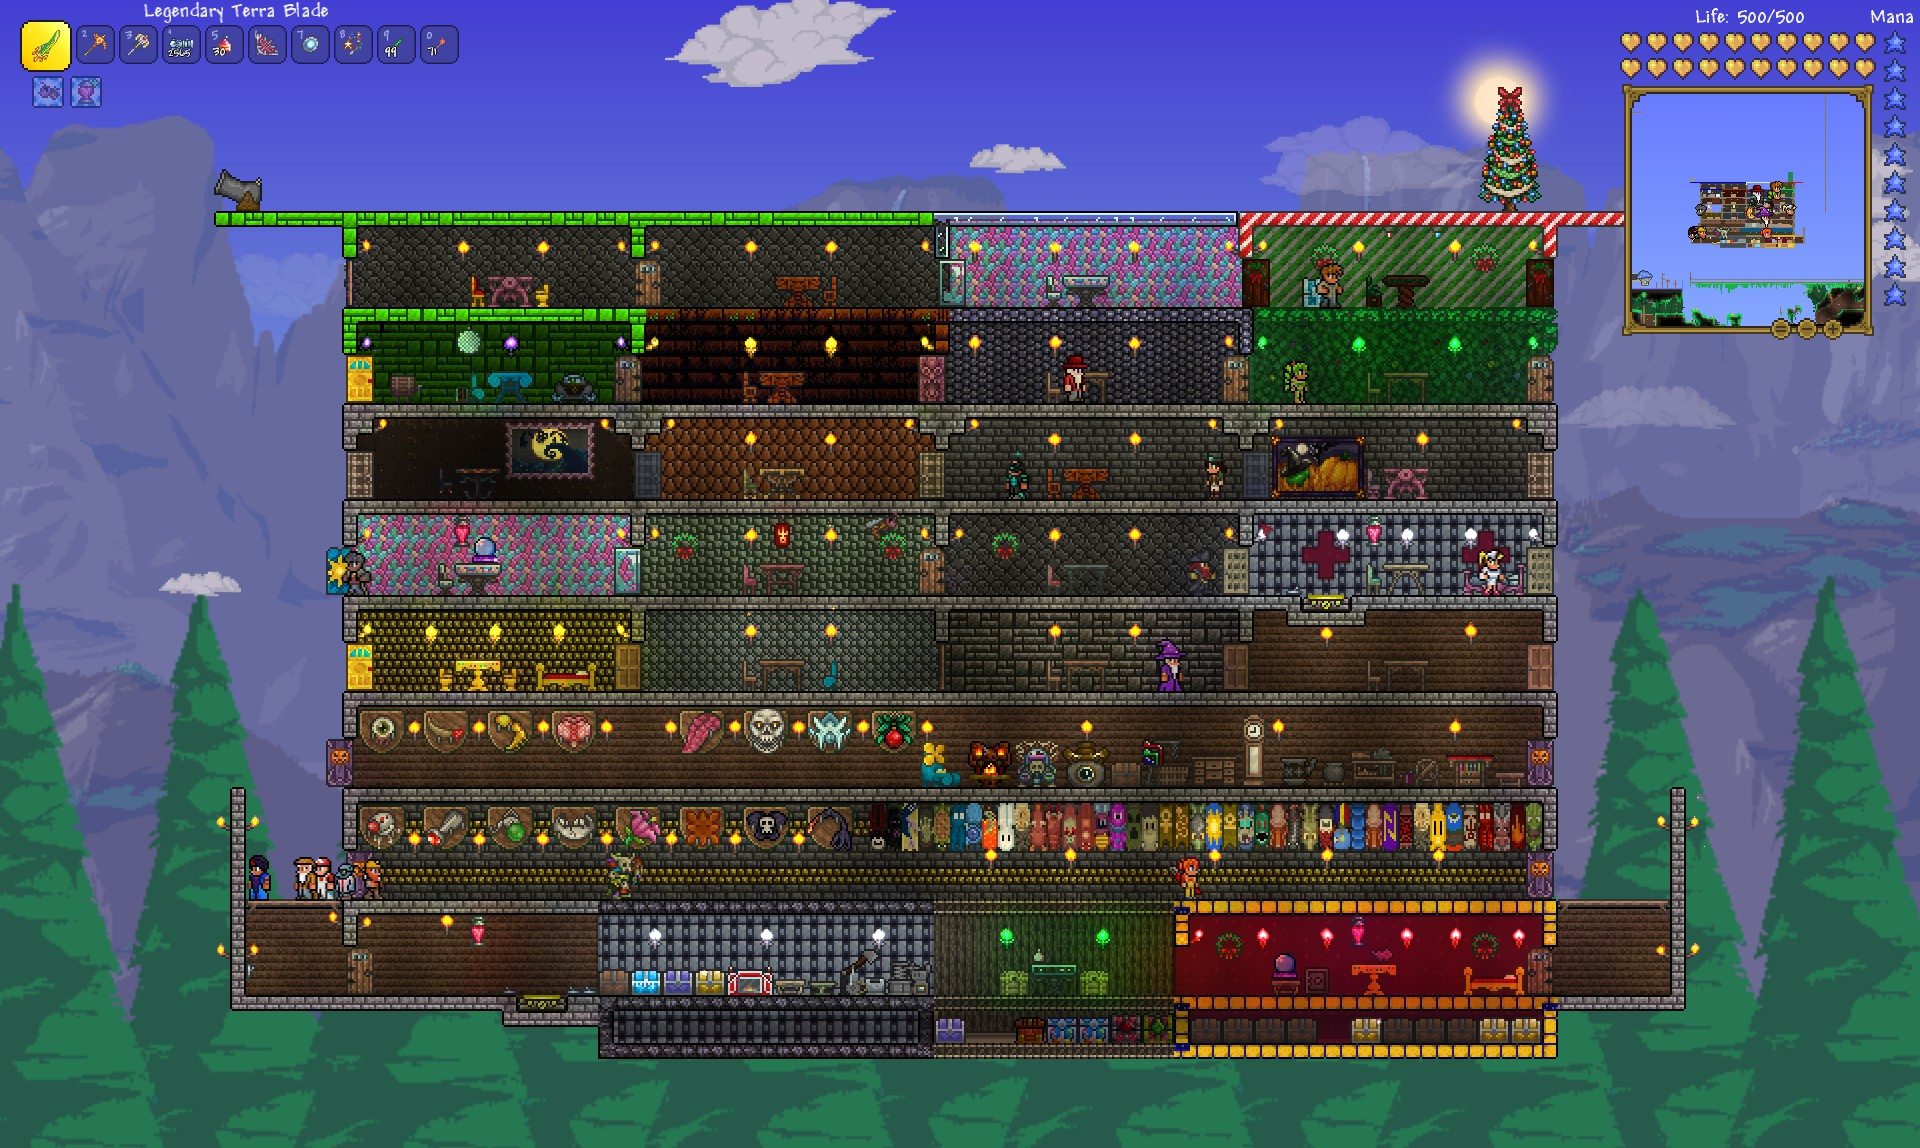 Terraria Review - Final Base